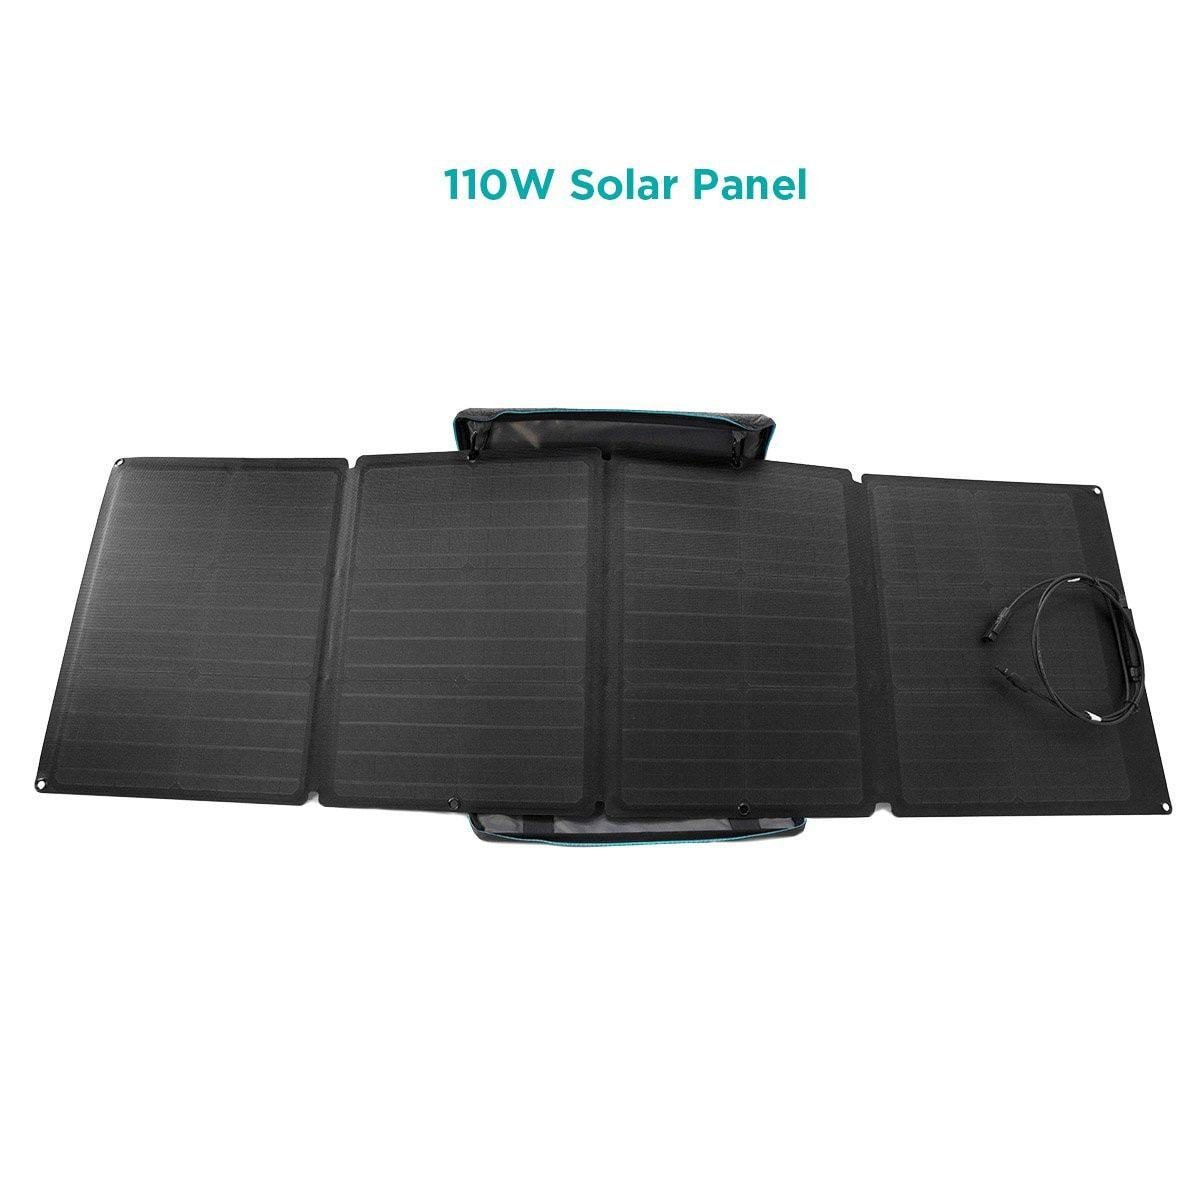 EcoFlow 110w Portable Solar Panel Charger